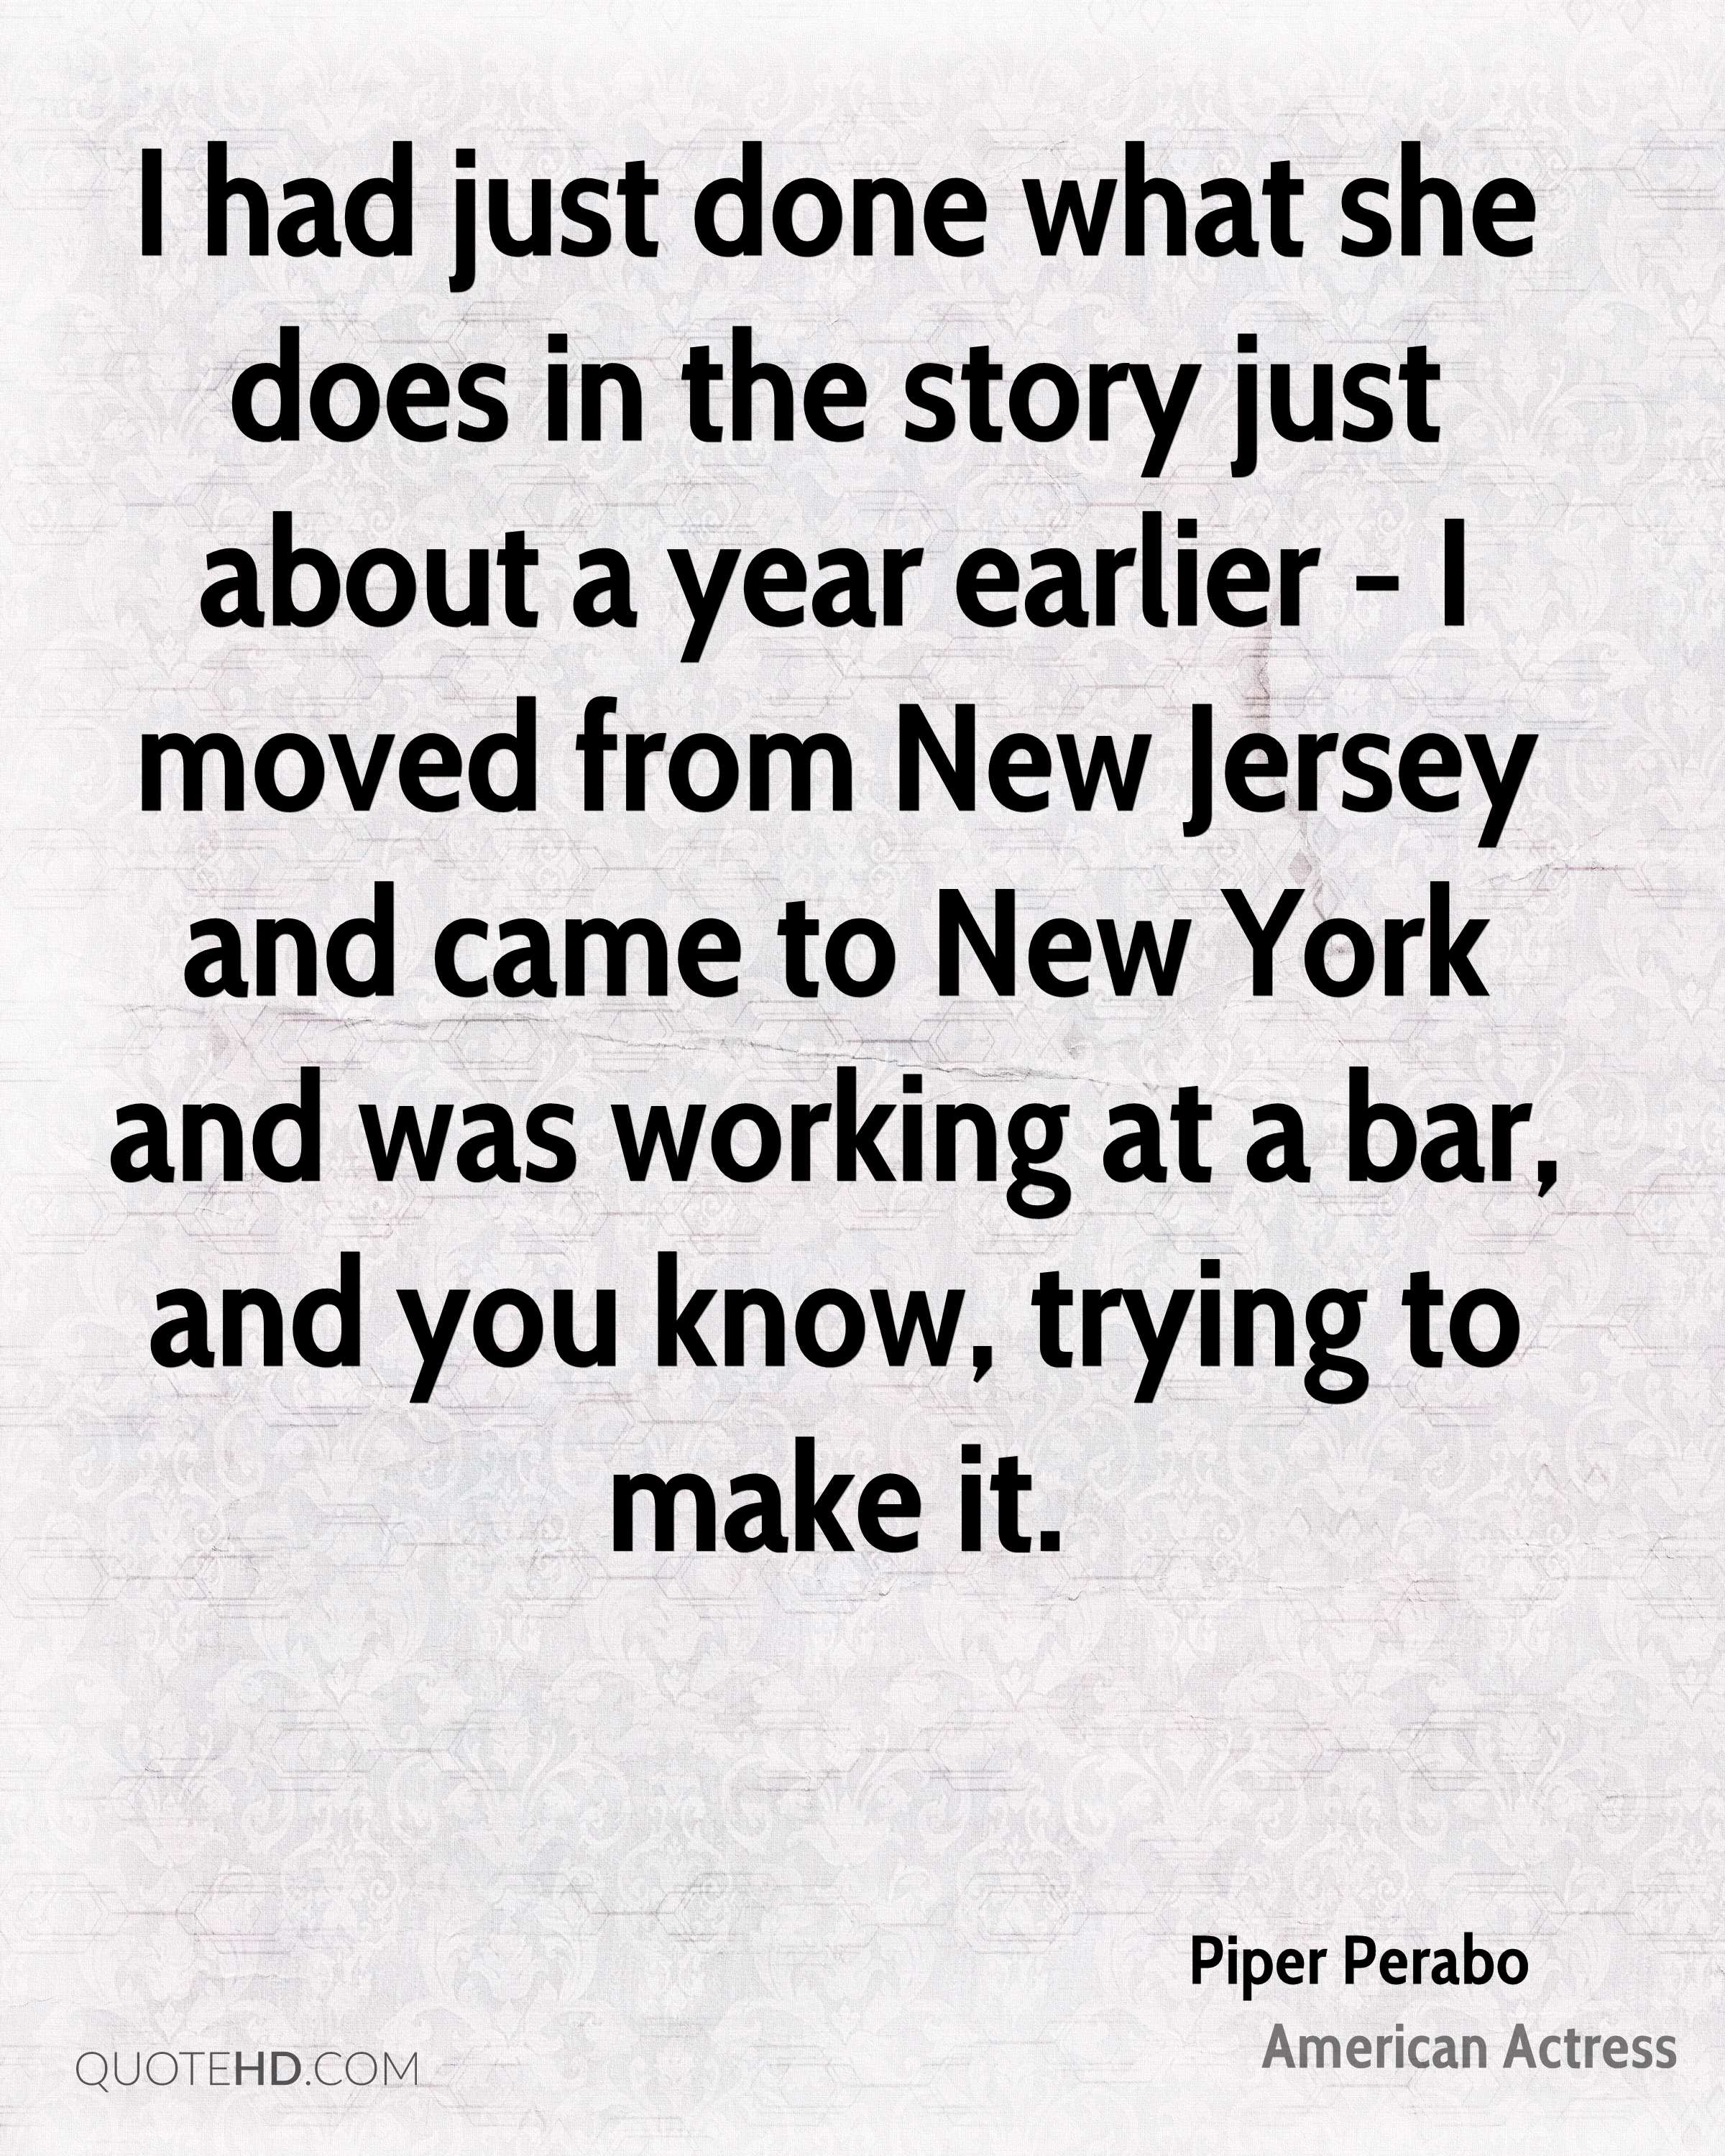 I had just done what she does in the story just about a year earlier - I moved from New Jersey and came to New York and was working at a bar, and you know, trying to make it.